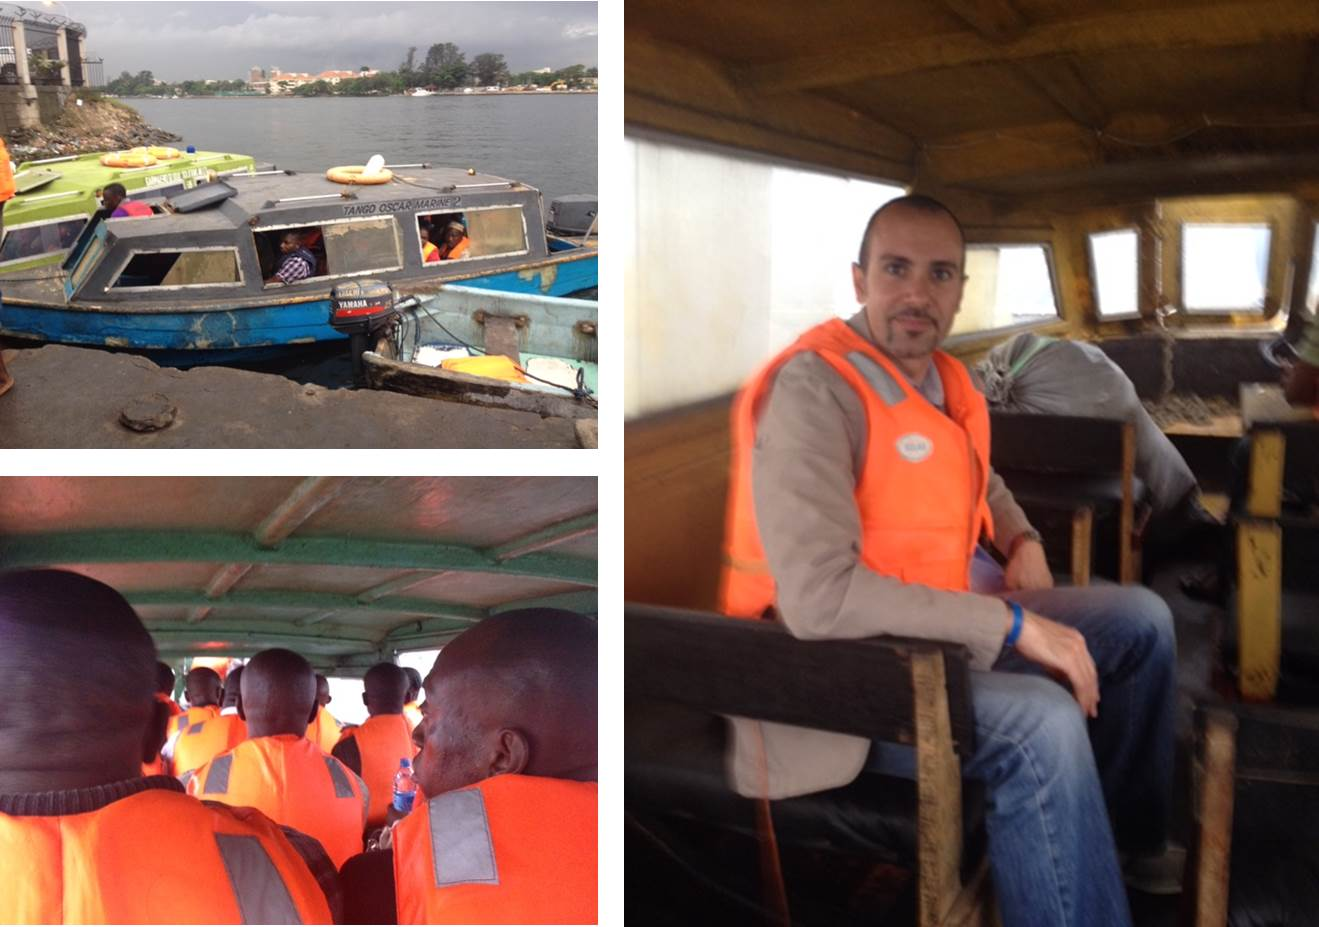 Lagos water transport visit